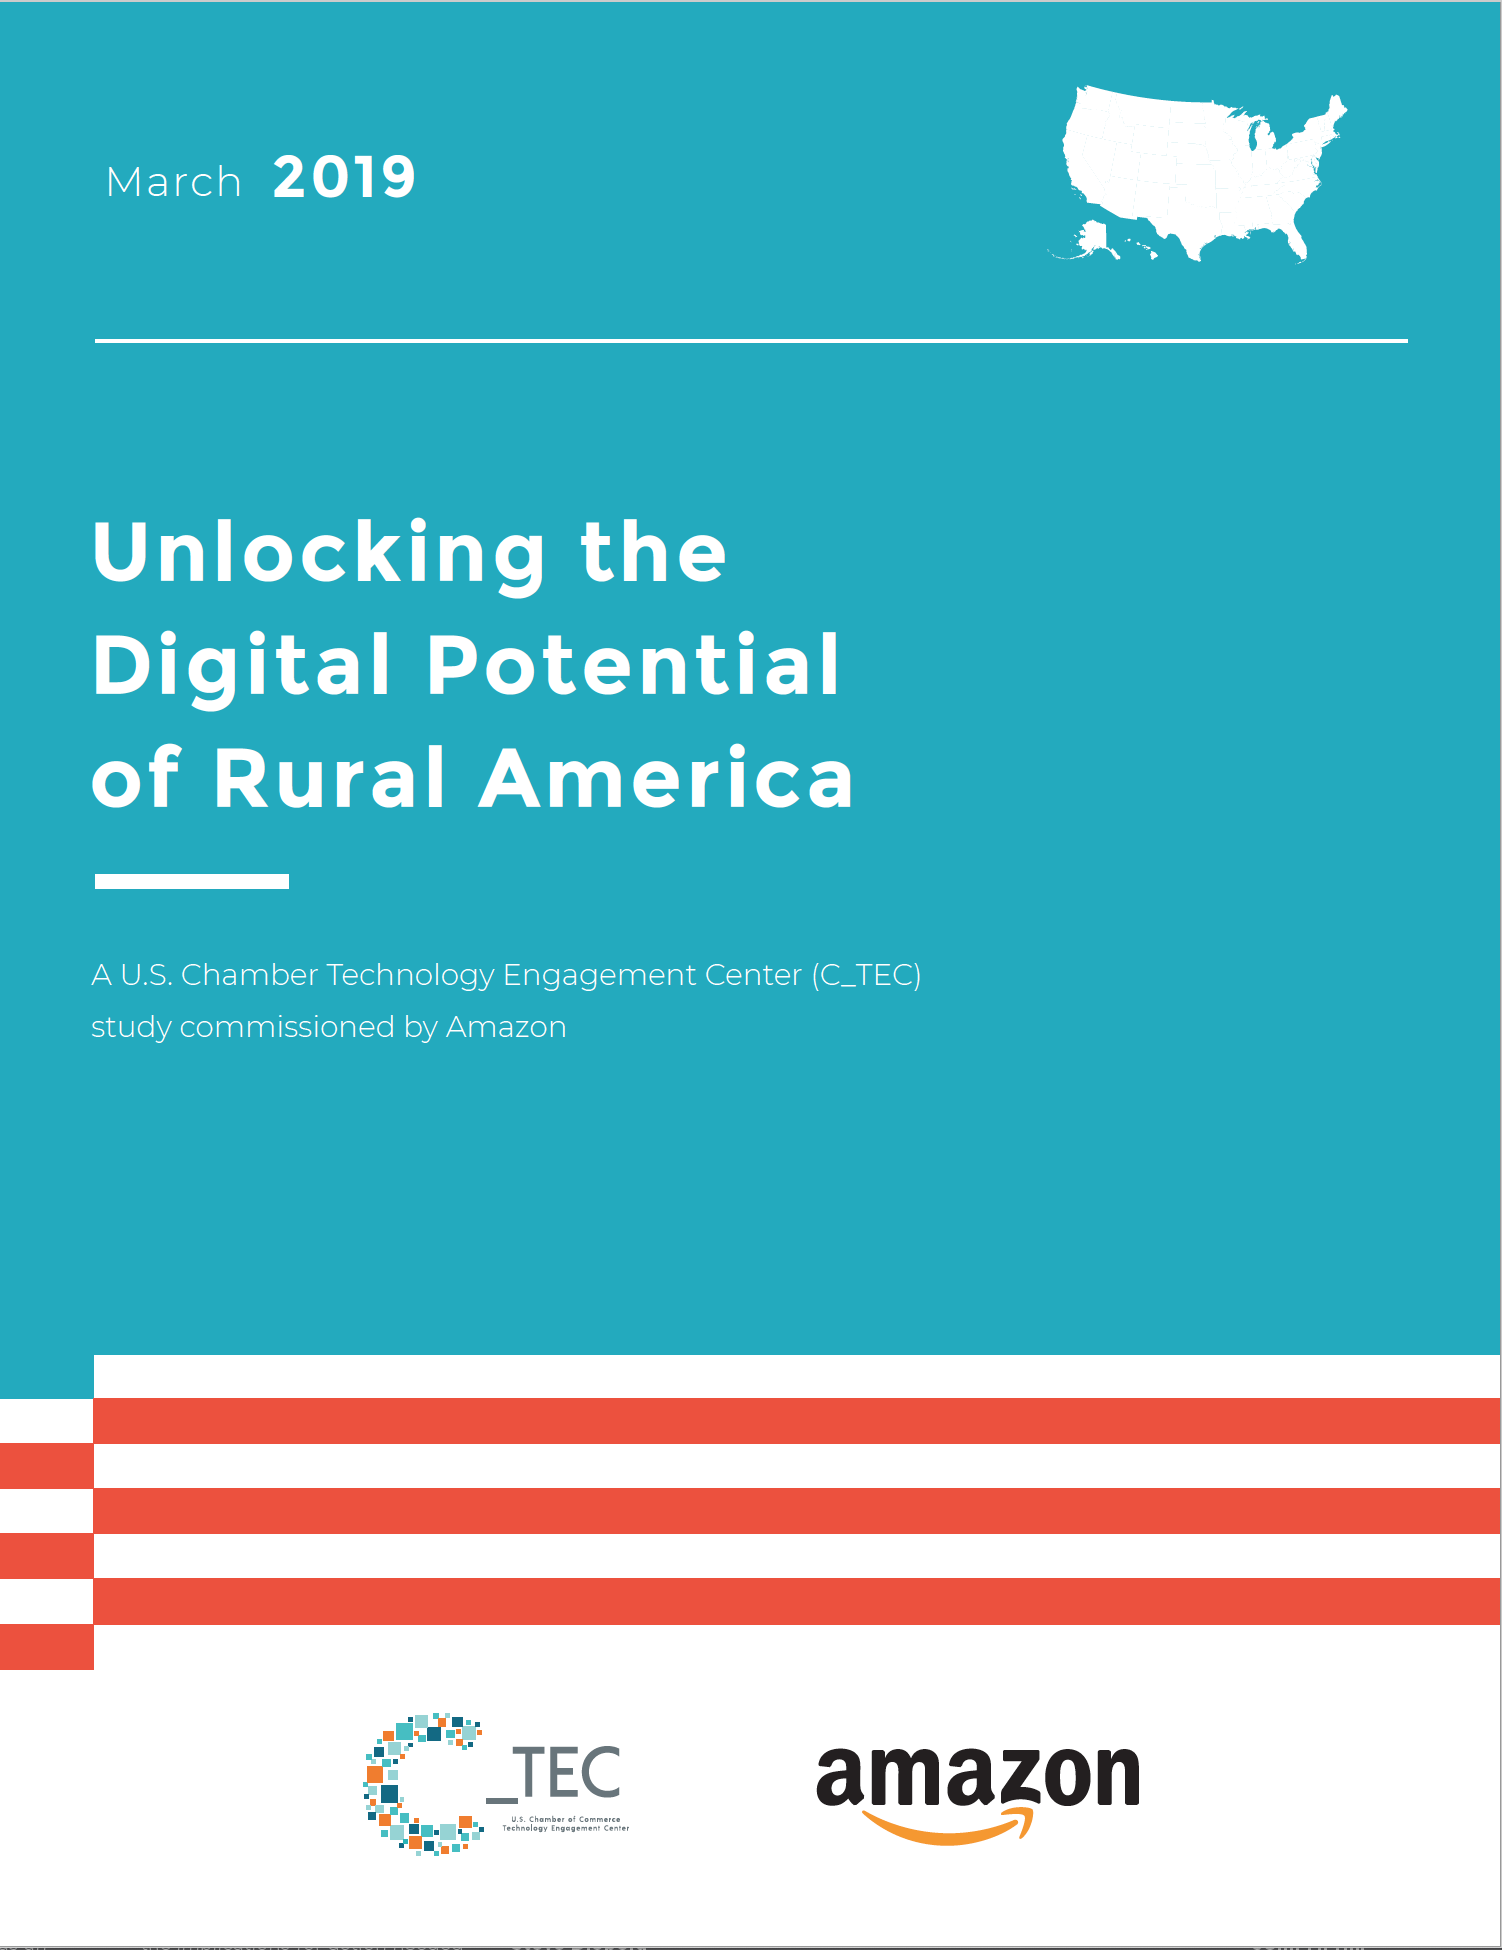 Unlocking the Digital Potential of Rural America